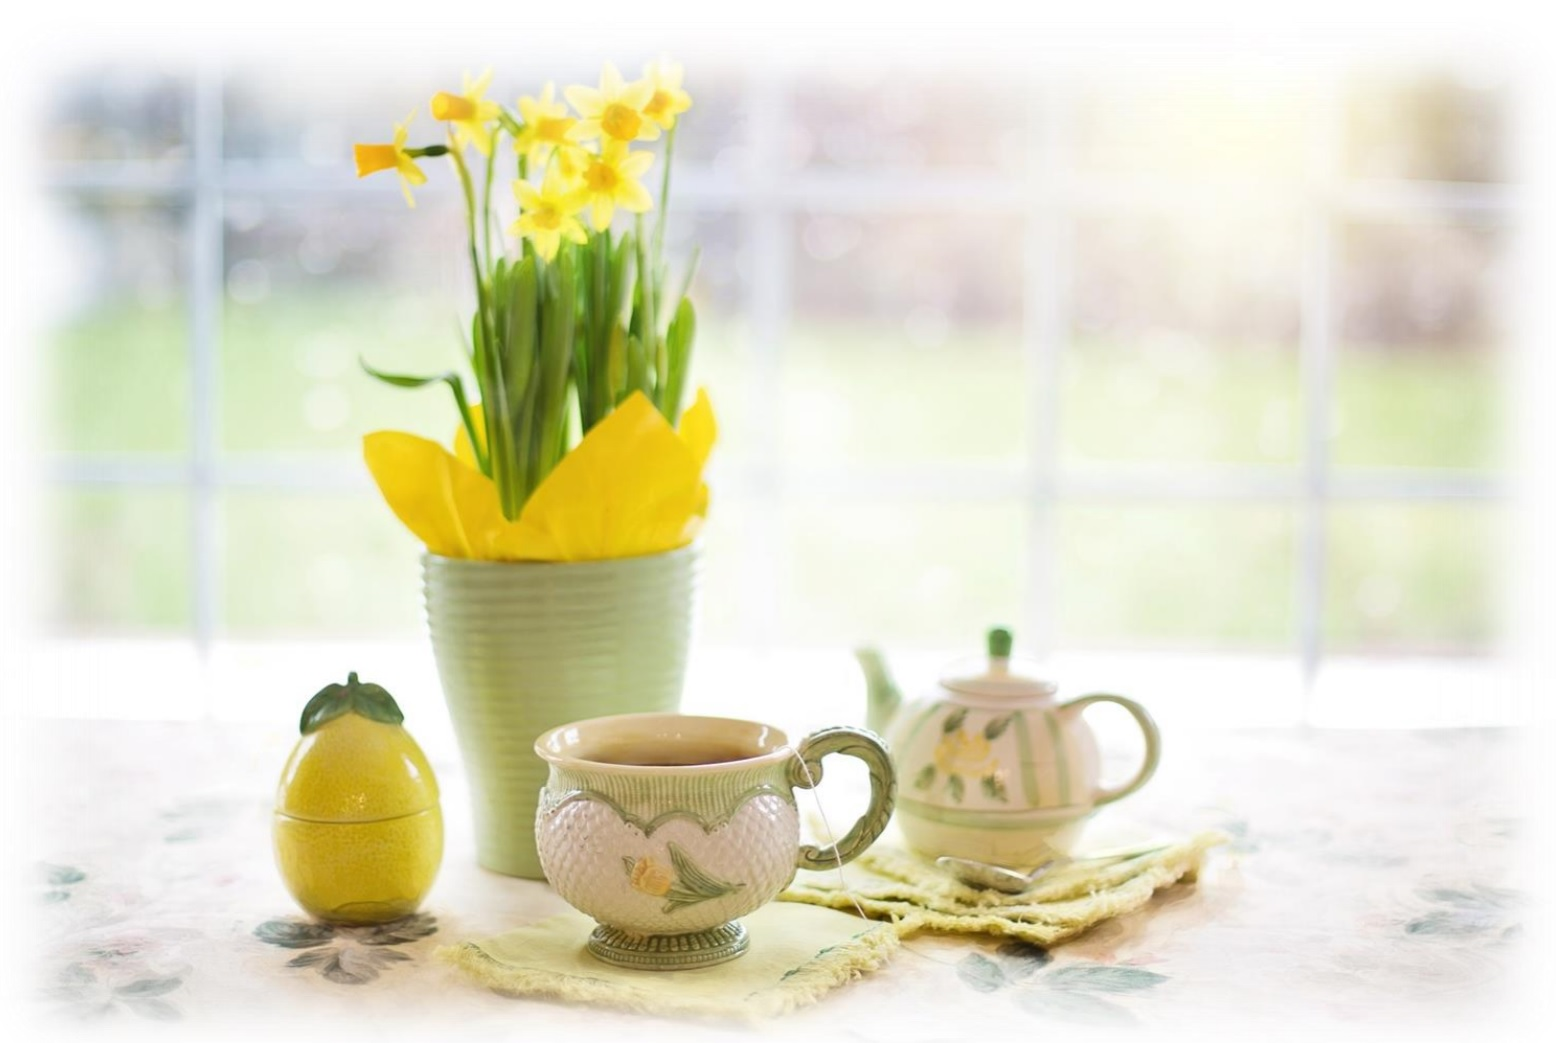 Late Winter & Spring Seasonal syrup recipes for tea and coffee